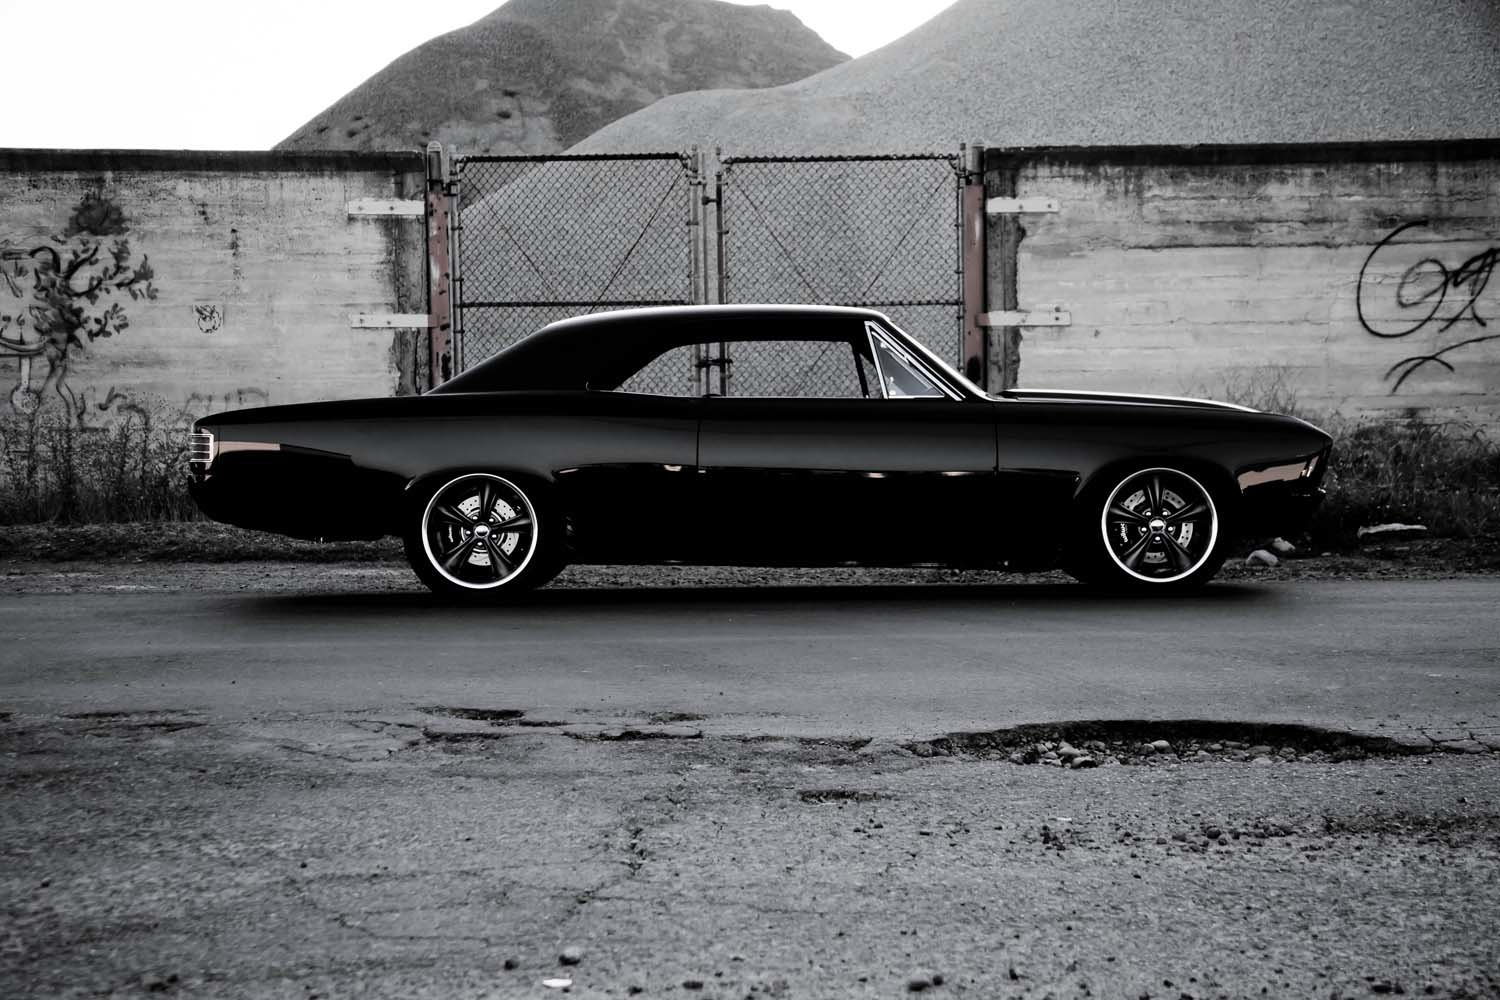 Sickness Chevelle Muscle Car